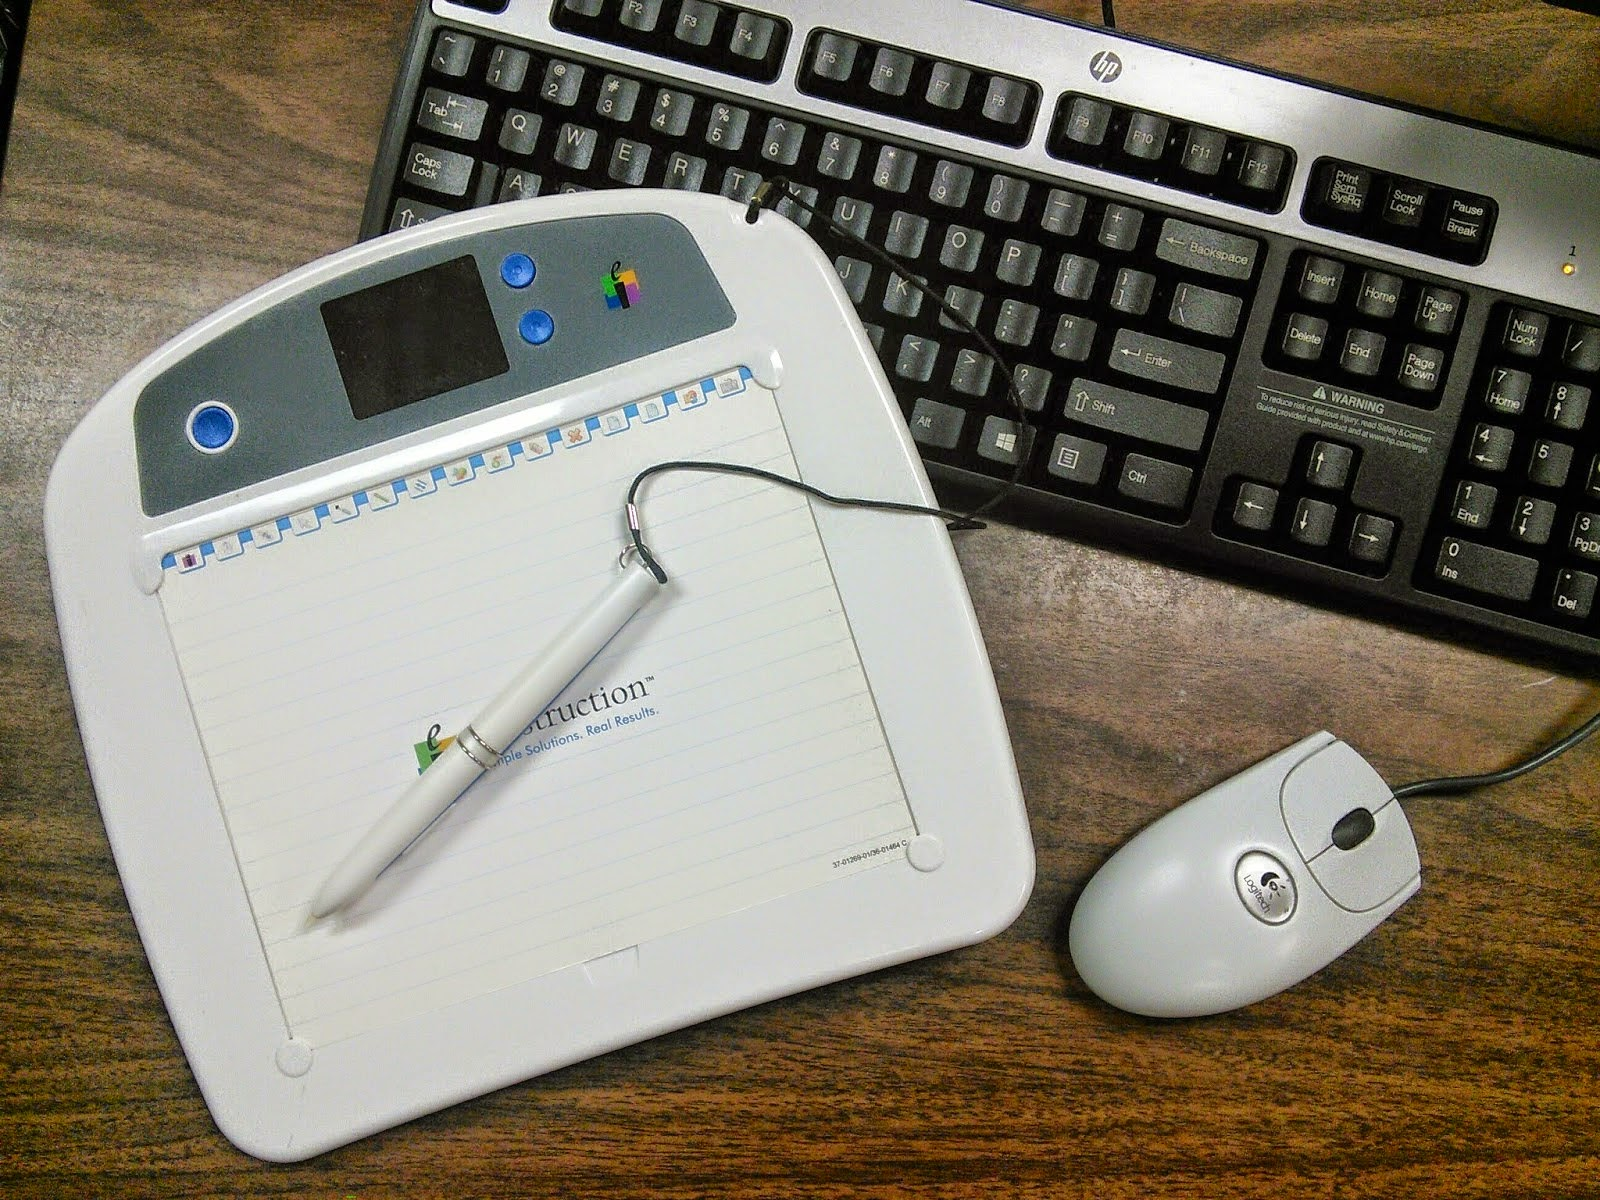 image of a Mobi, mouse and keyboard